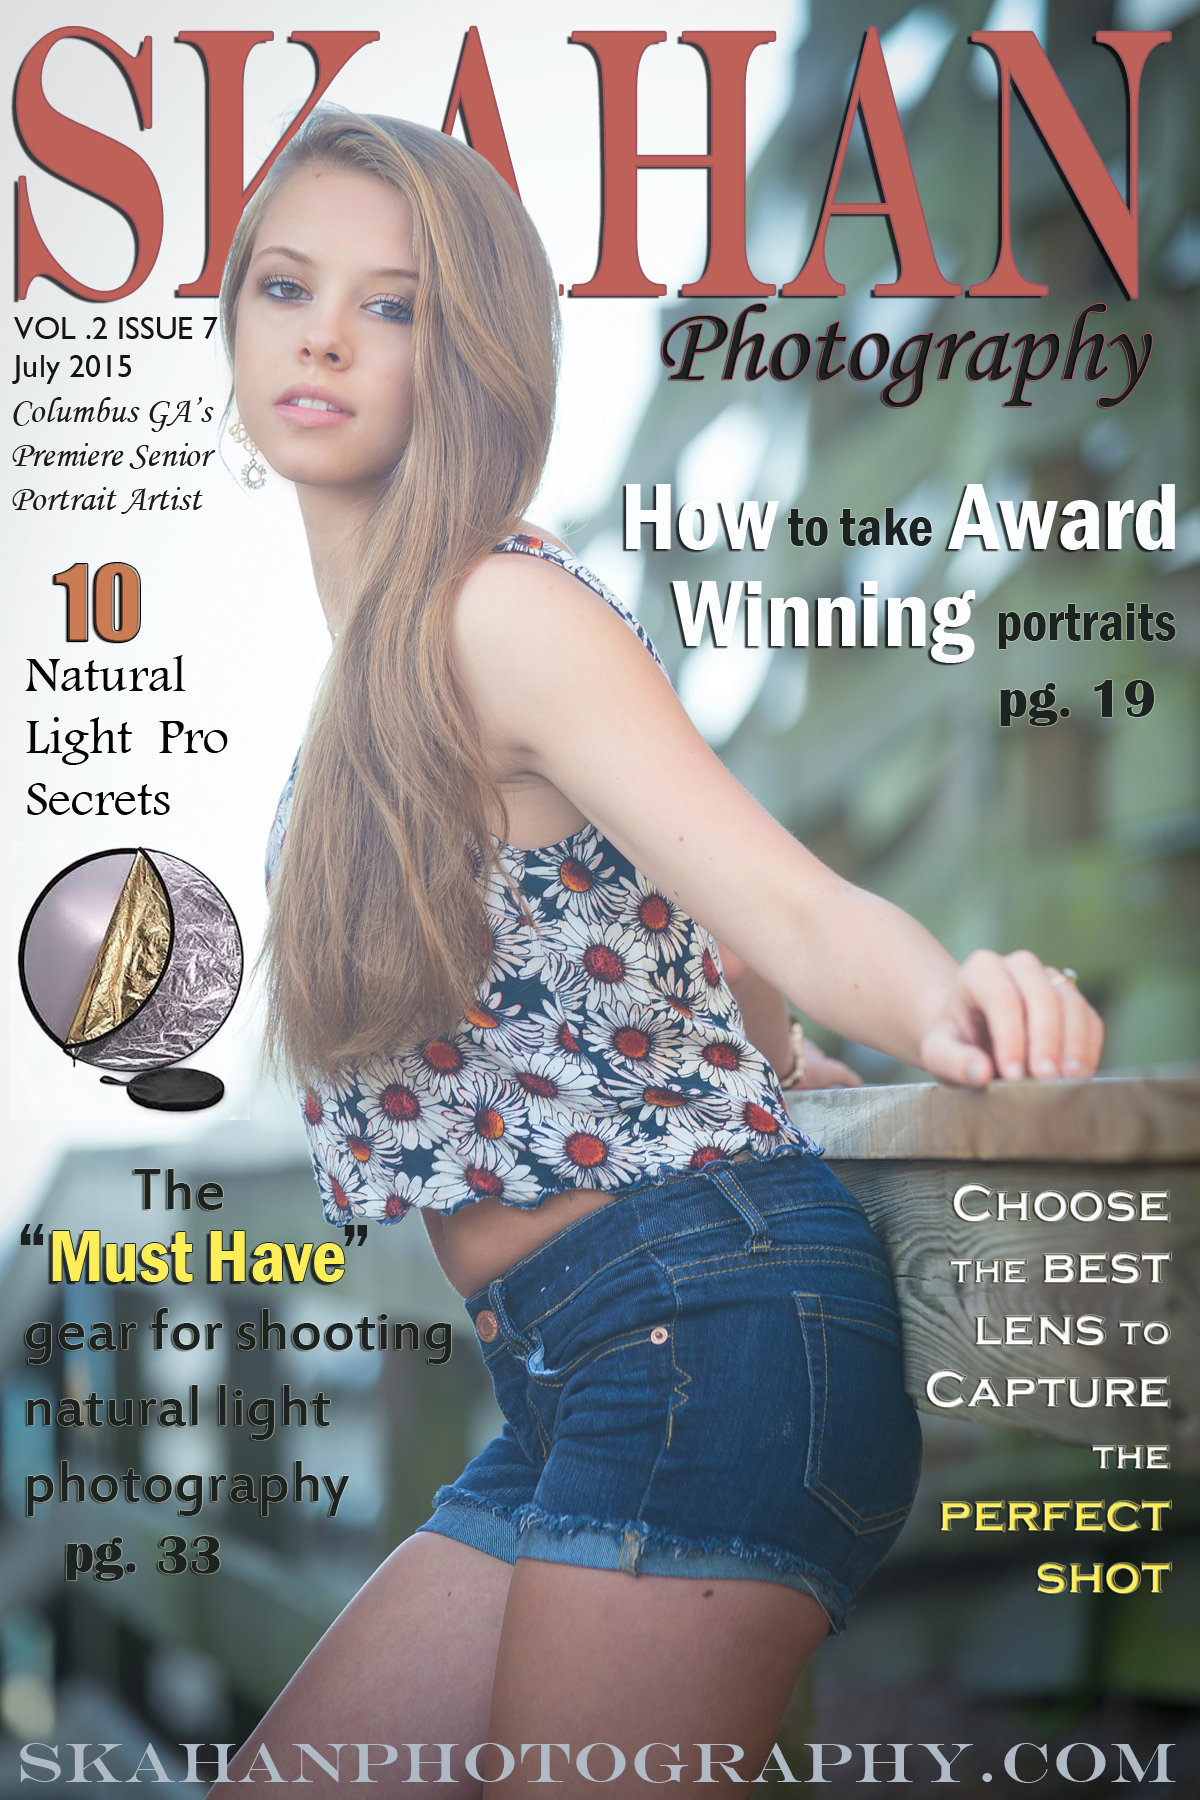 Volume 2 Issue 7 July 2015.jpg